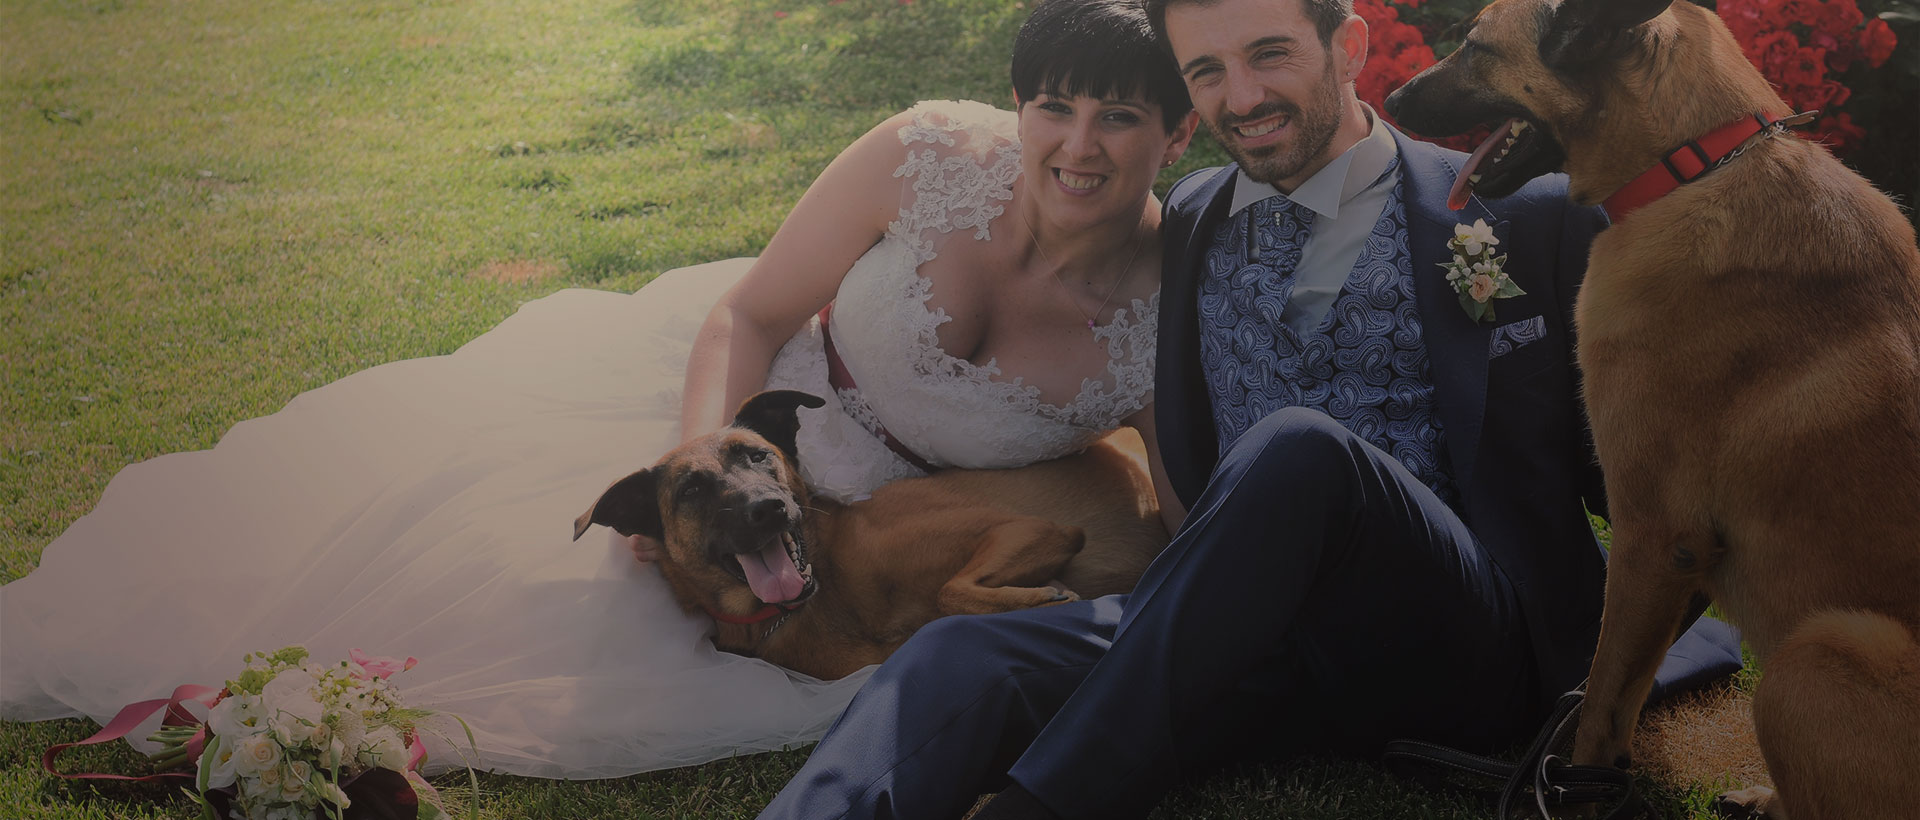 dog sitting matrimoni